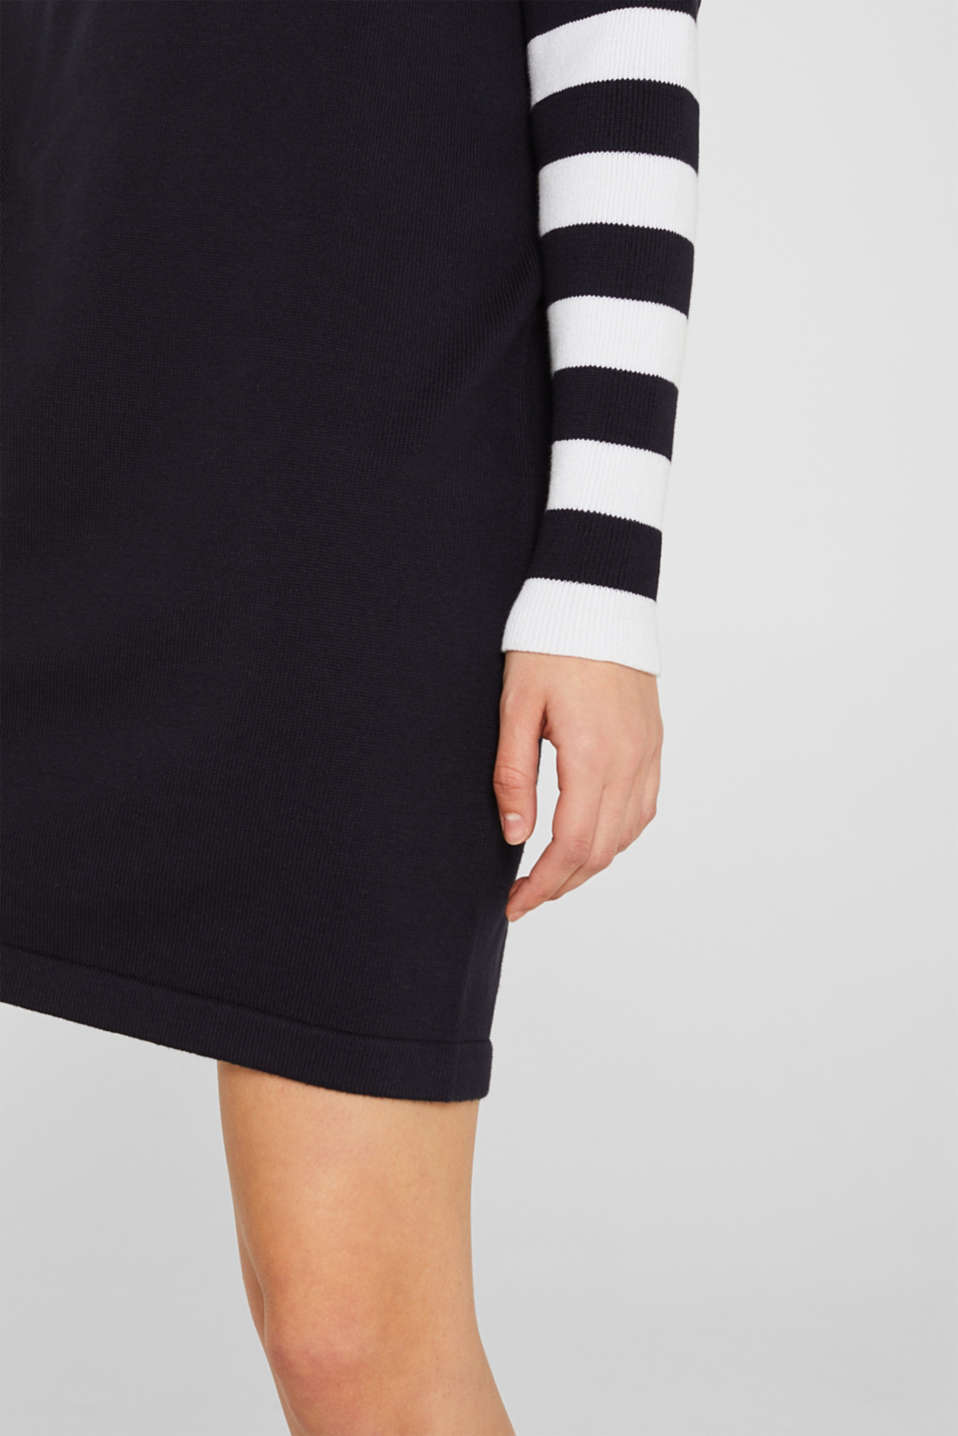 Knit dress with stripes, 100% cotton, NAVY 2, detail image number 6